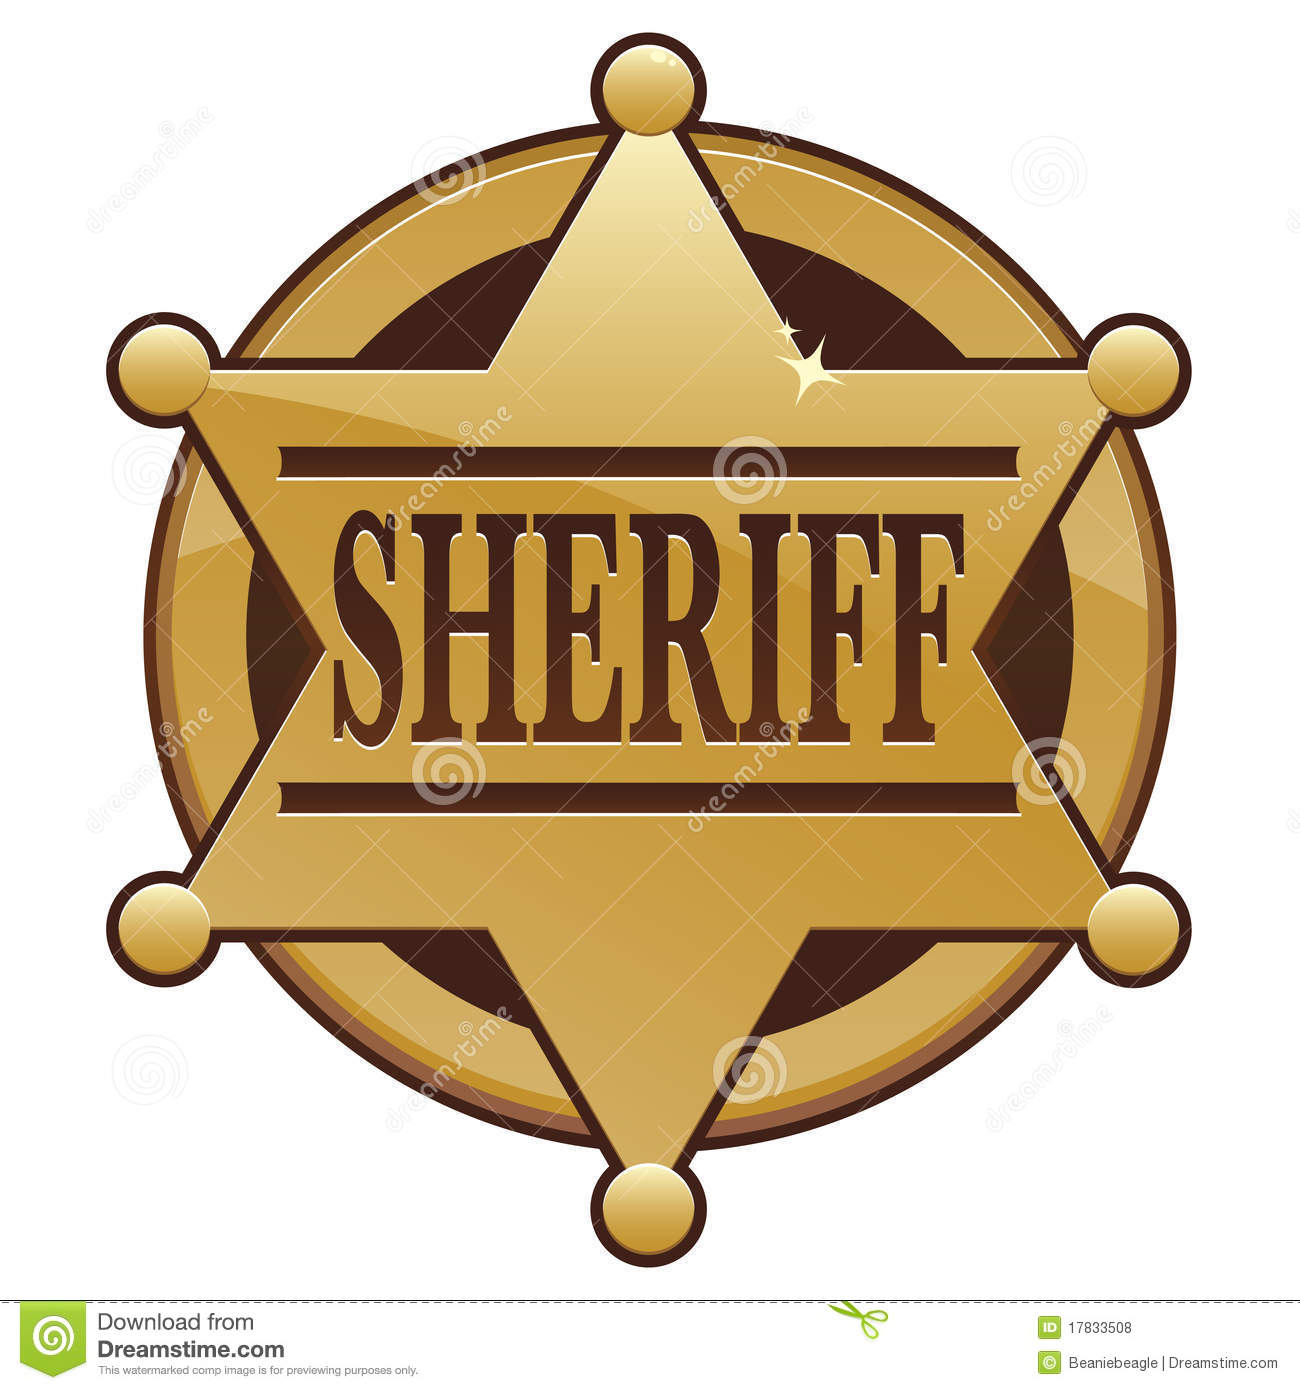 Similar Galleries: Sheriff Badge Clip Art , Blank Badge Clip Art ,